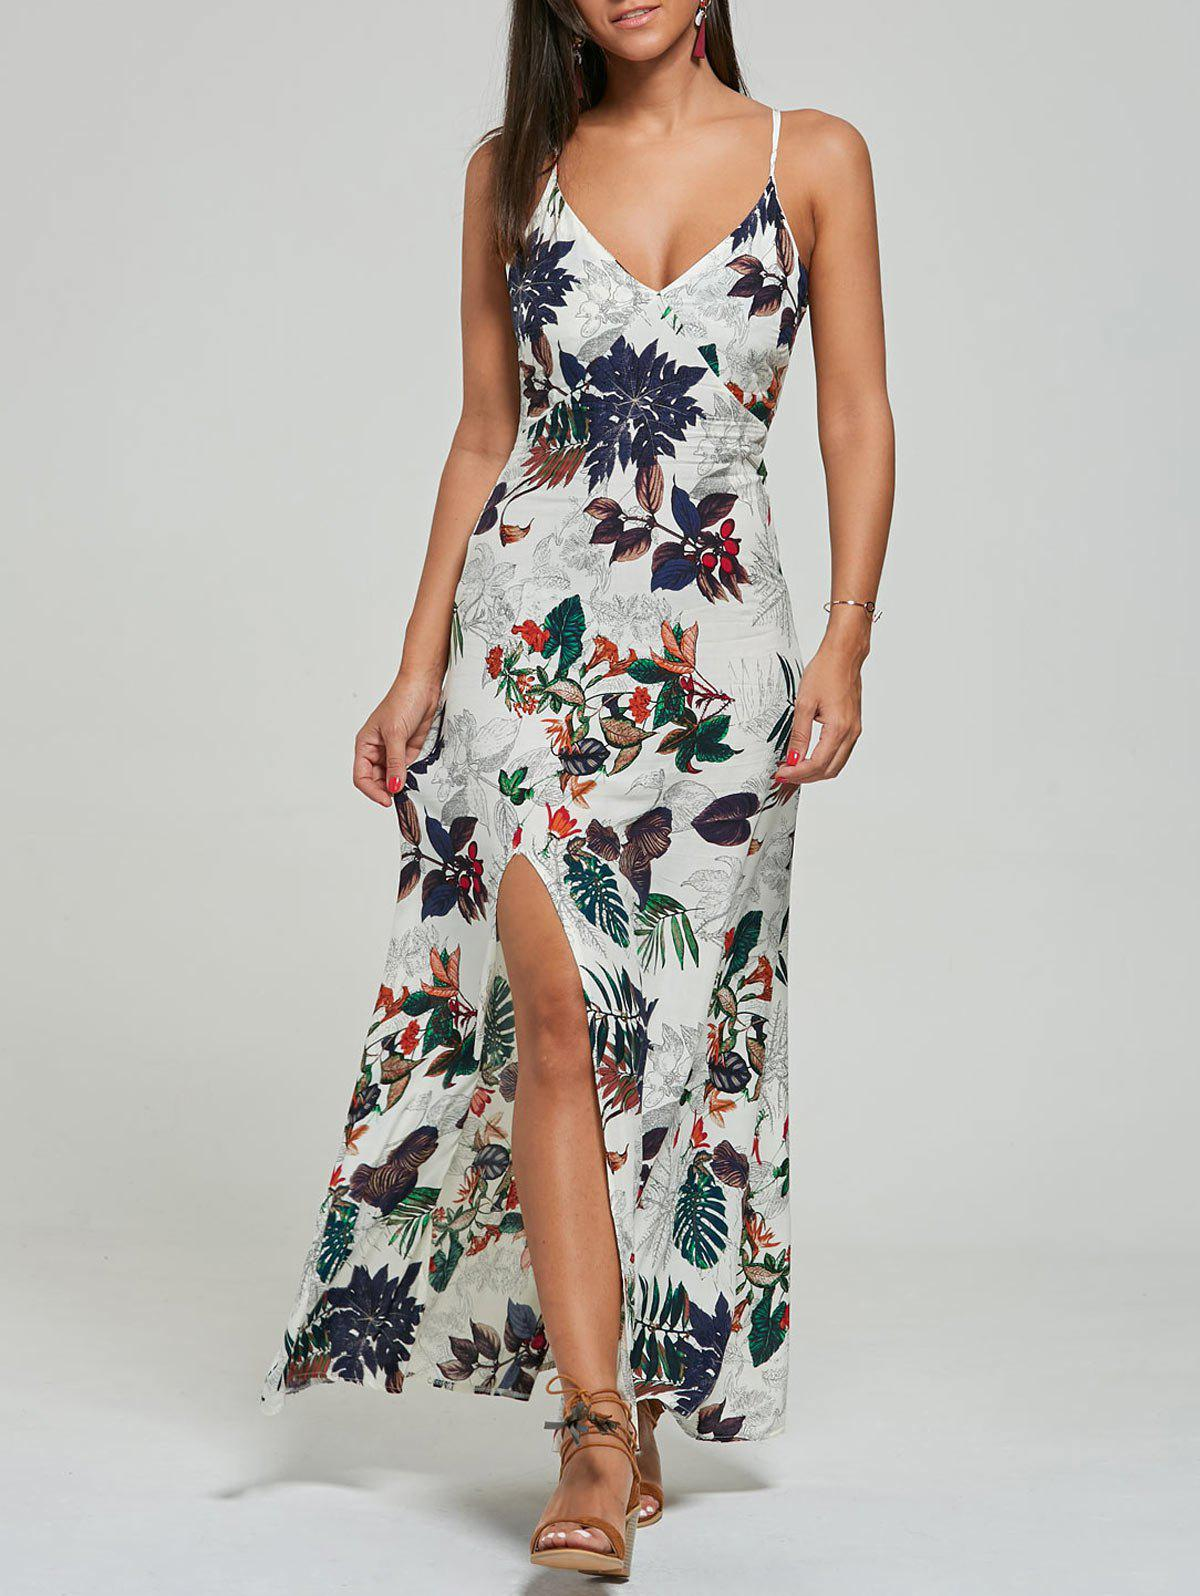 New Maxi Print High Slit Slip Ankle Length Dress